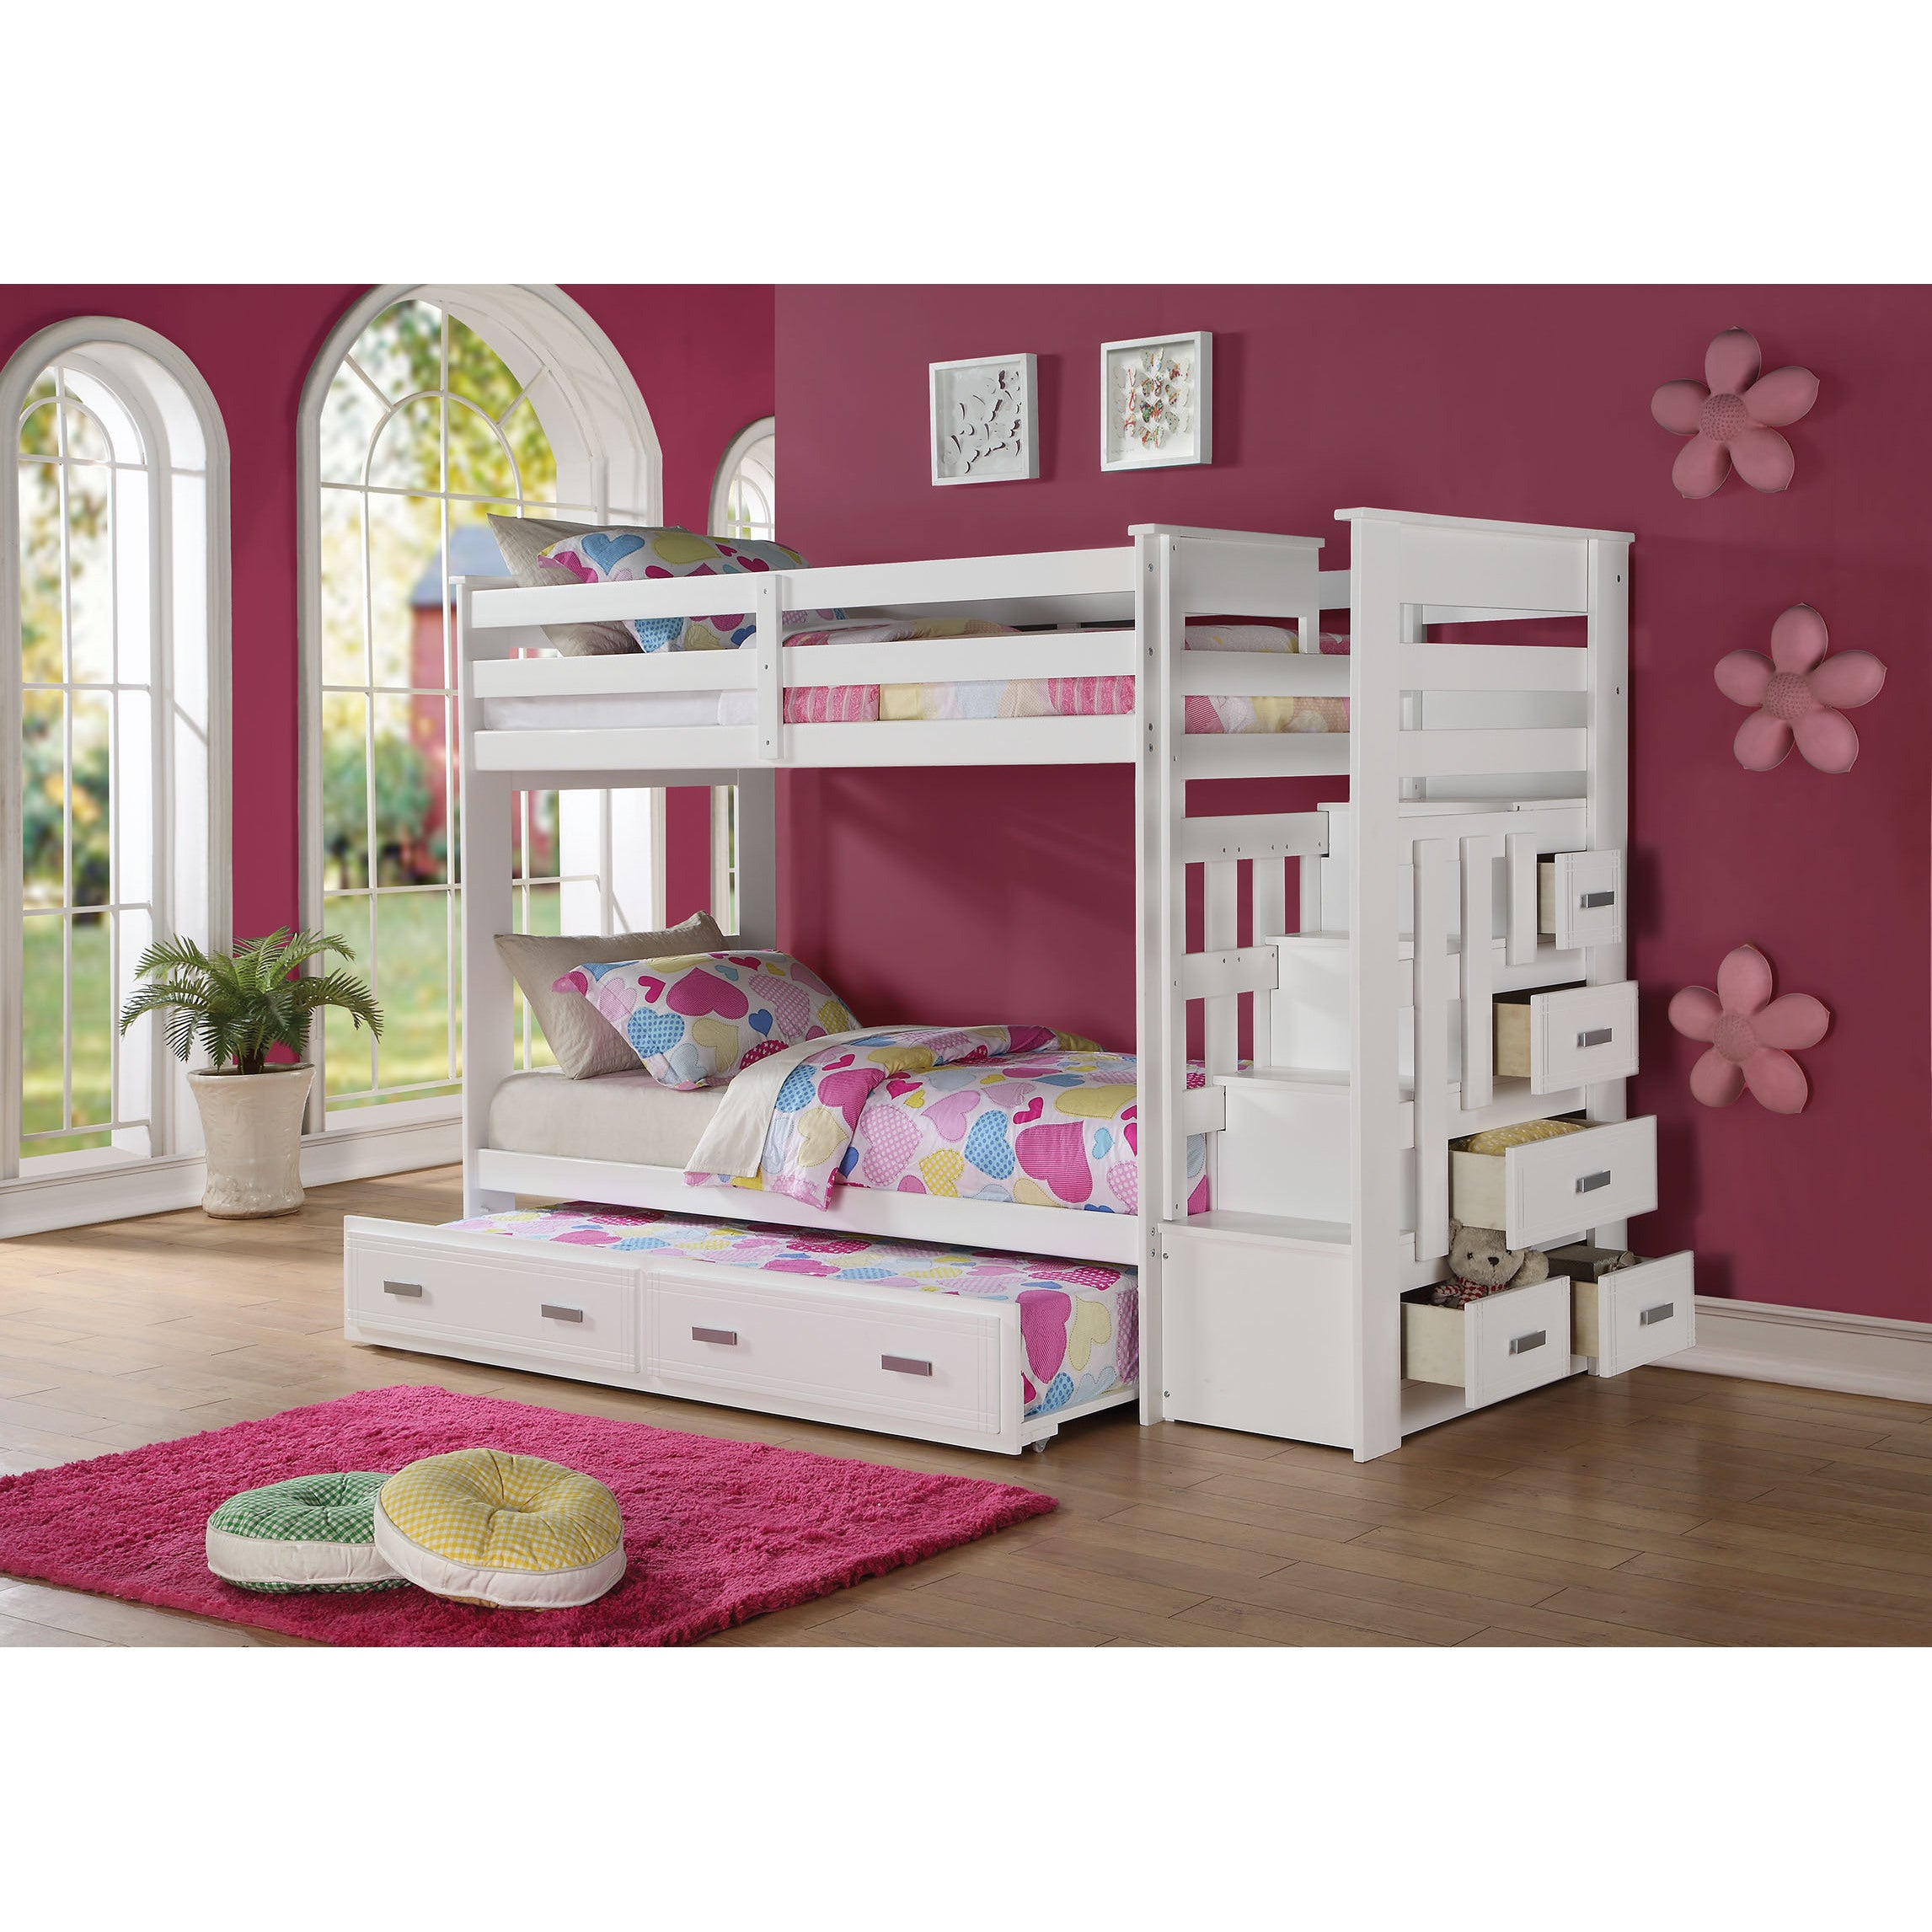 Allentown White Pinewood Twin Over Twin Bunk Bed With Storage Ladder And Trundle Overstock 12636819